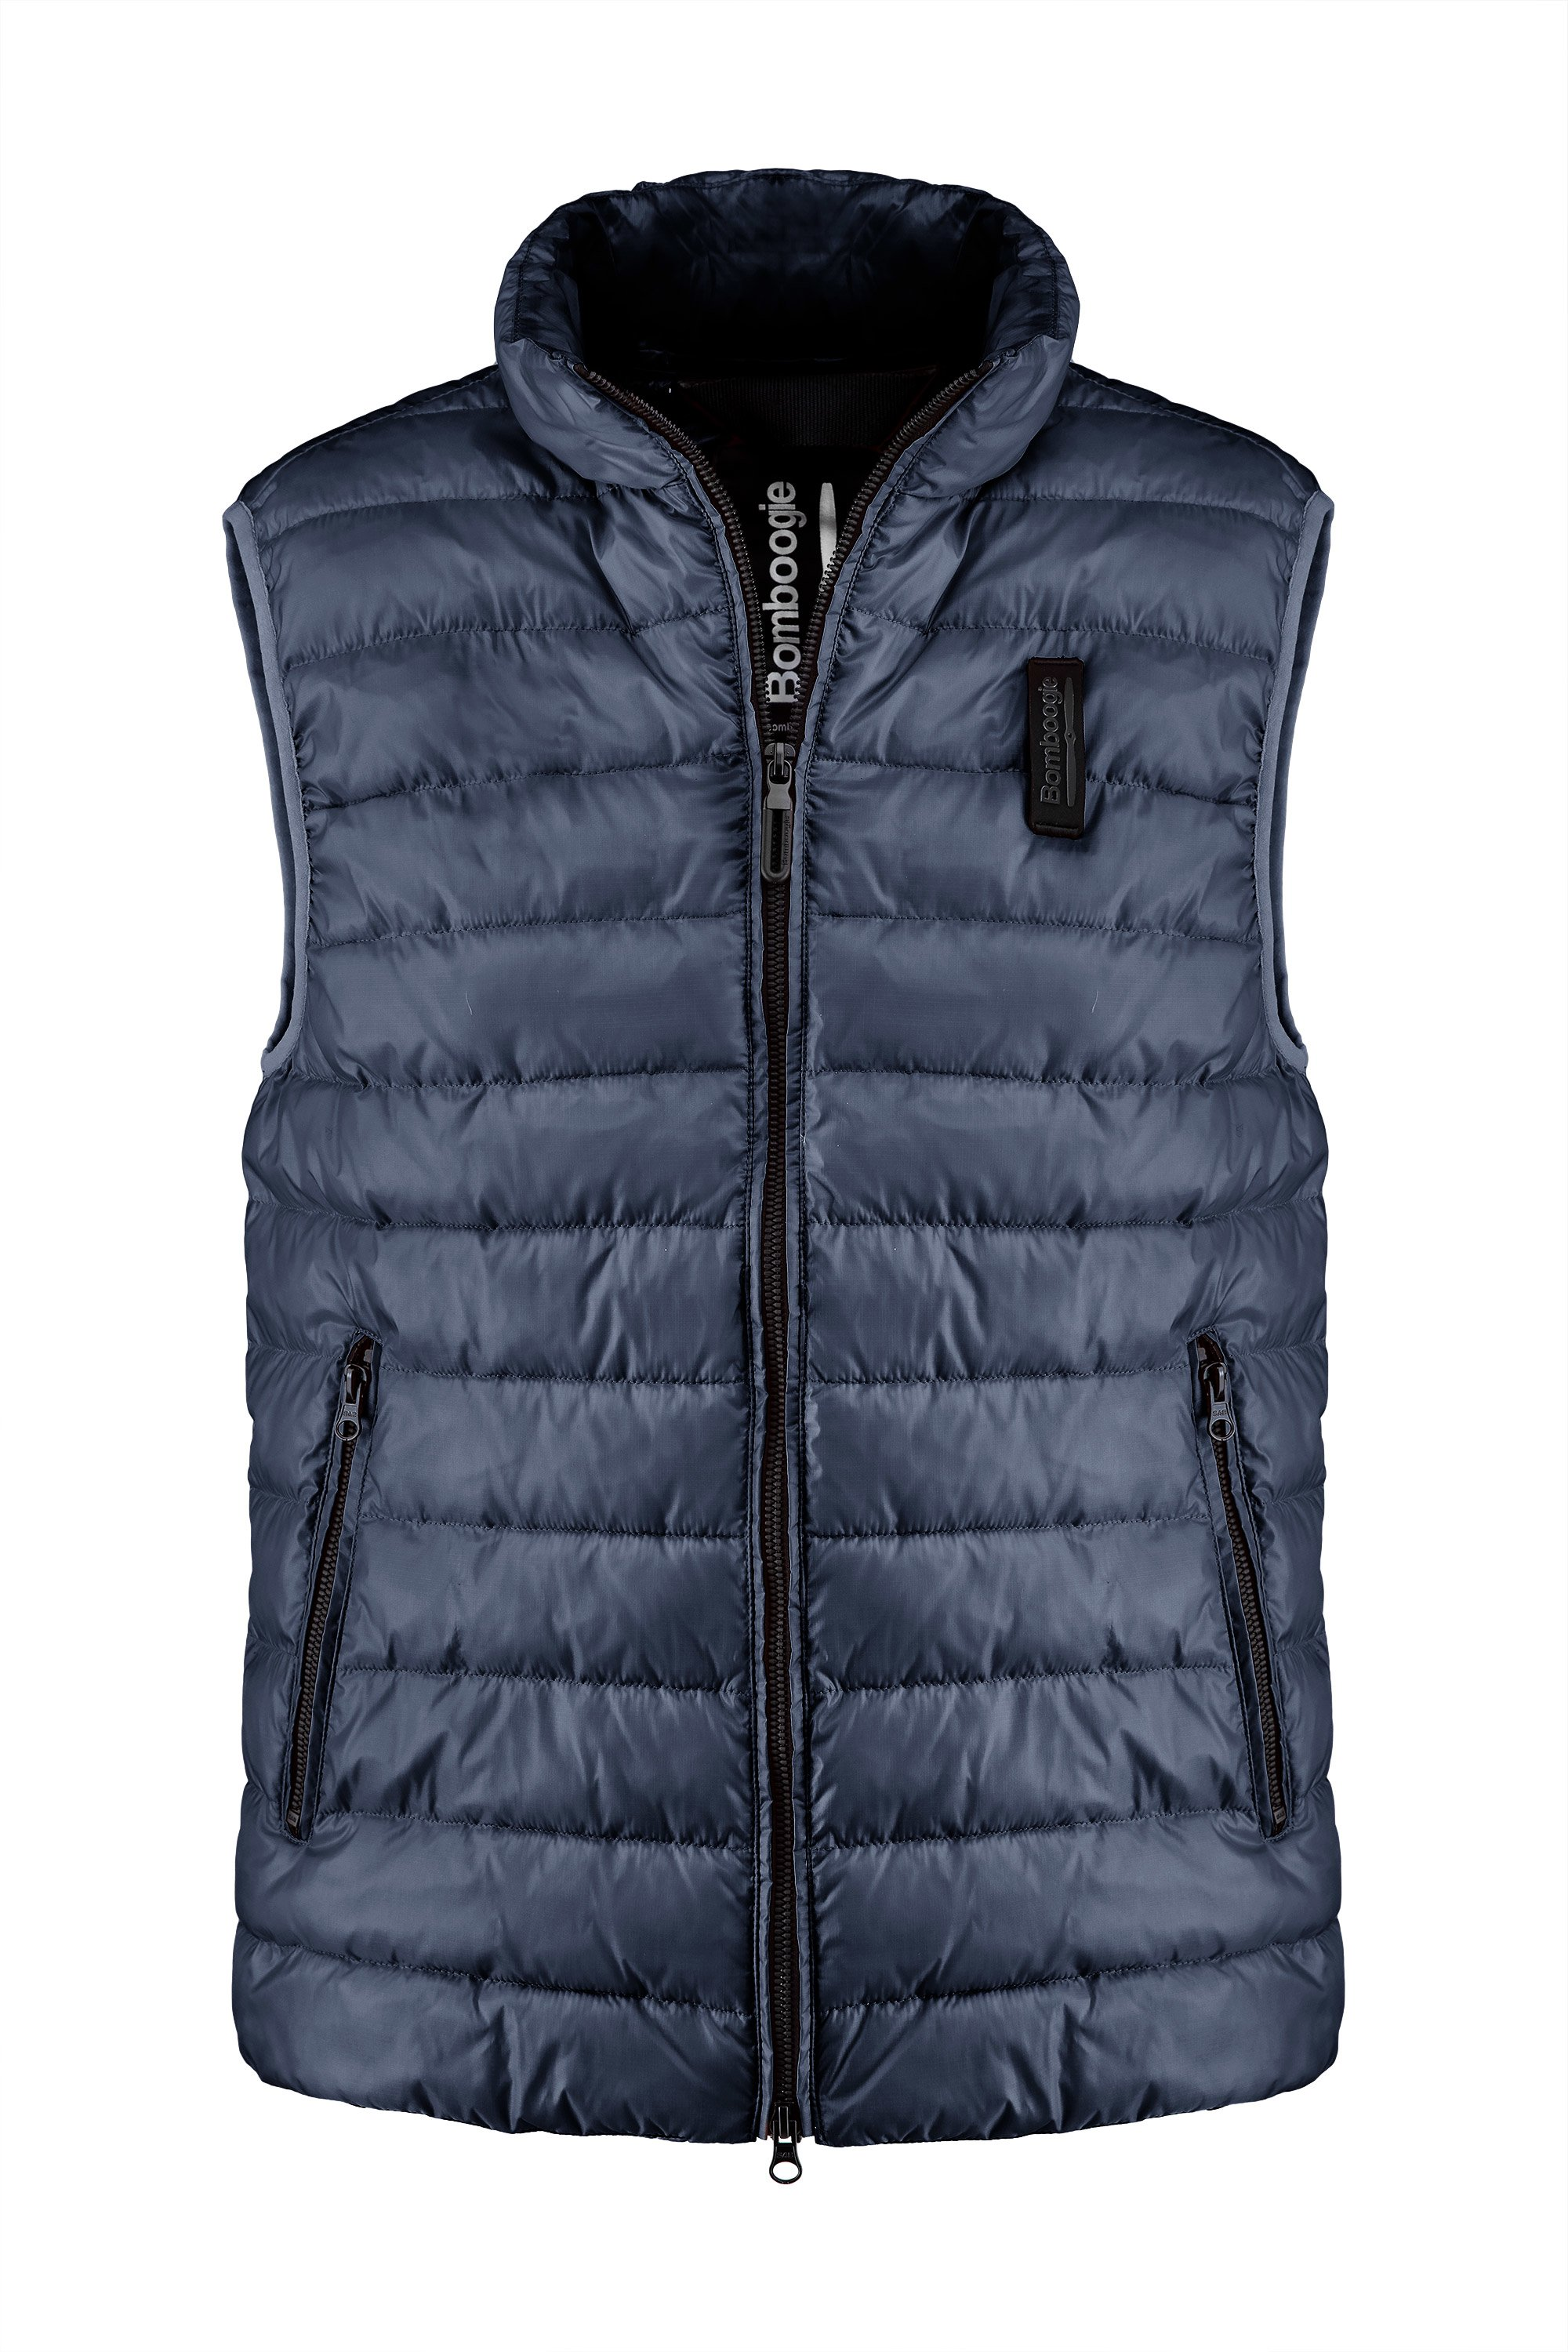 Vest in nylon micro pipstop with recycled PrimaLoft® filling